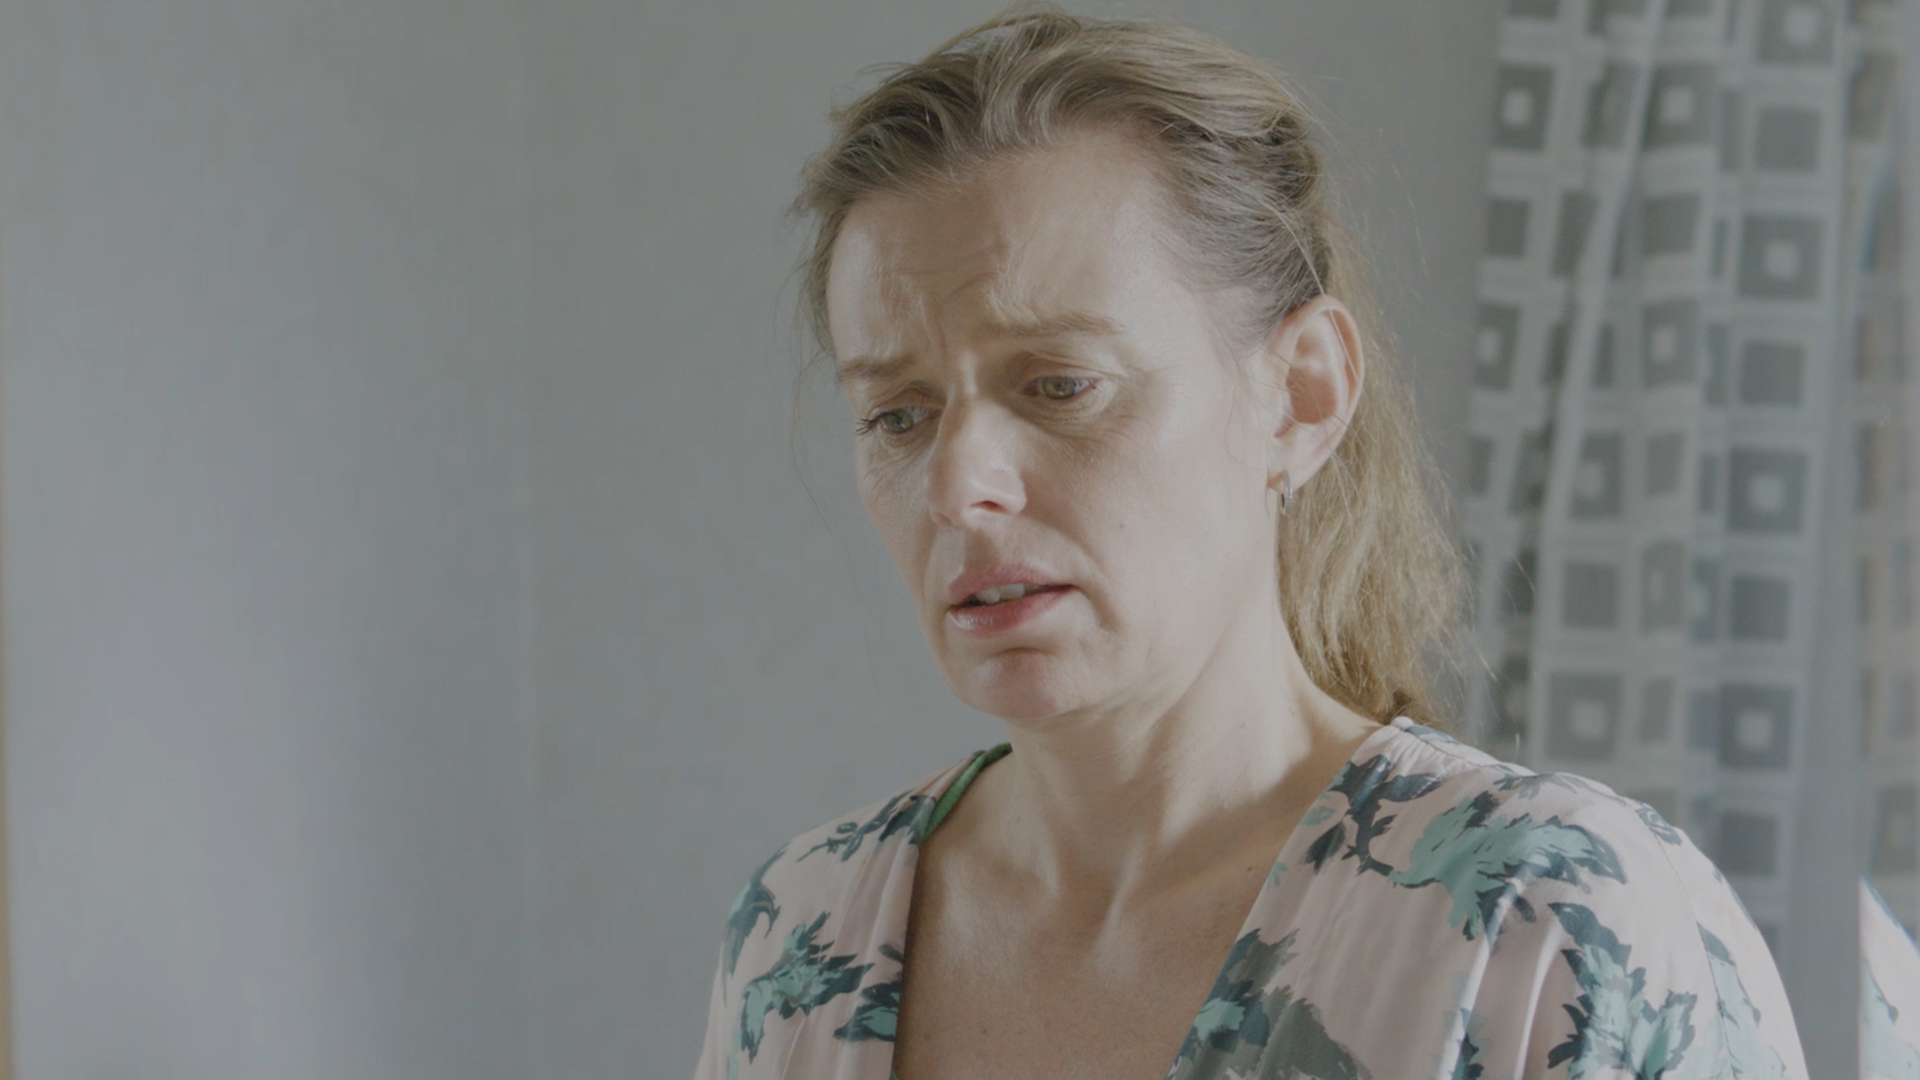 The Mum from the commercial looking worried